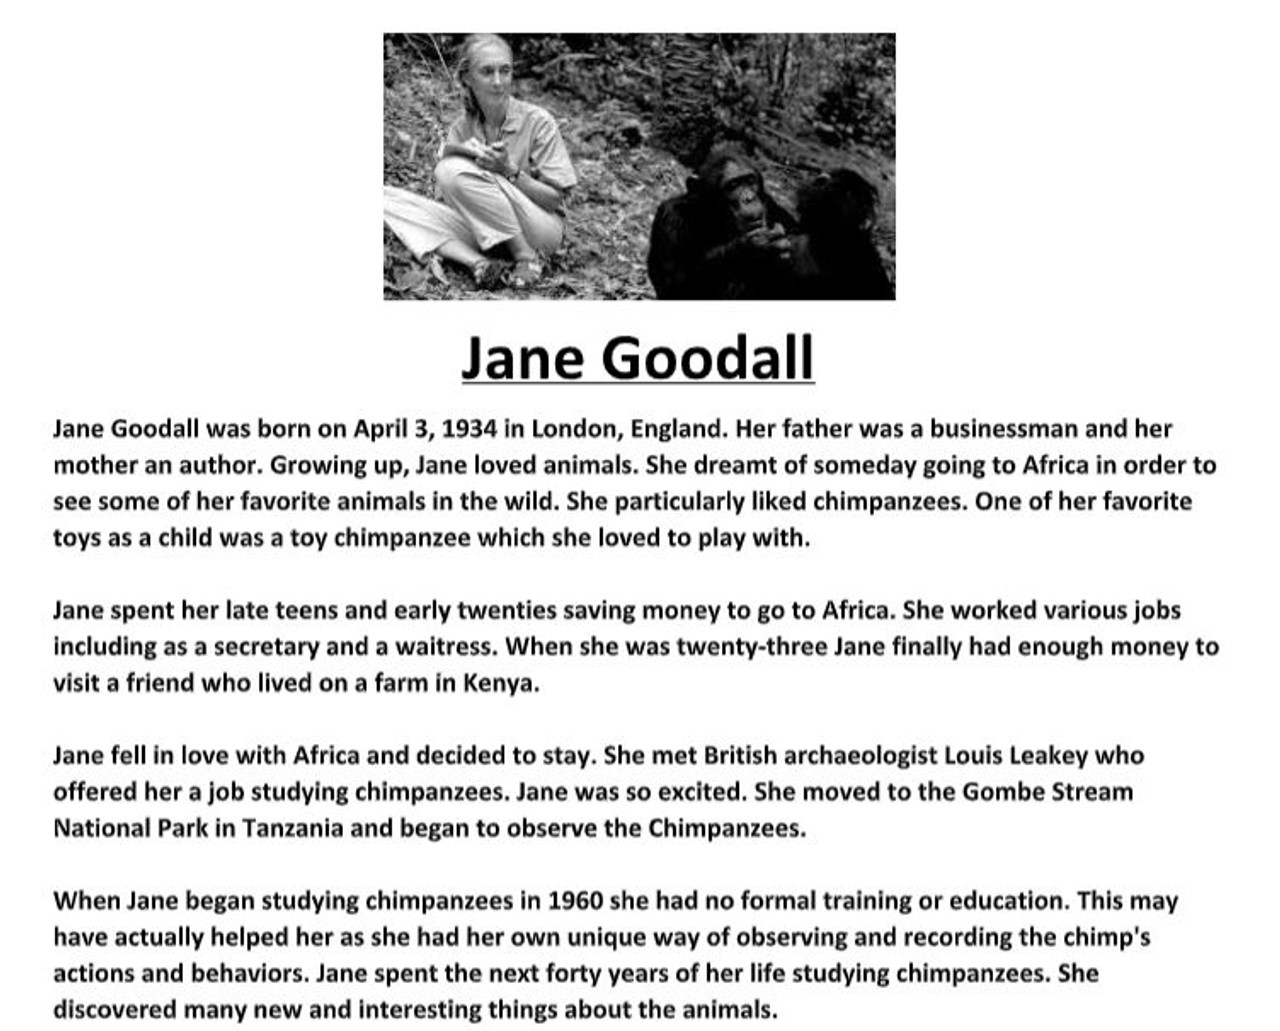 Jane Goodall Biography Worksheet - Amped Up Learning [ 1031 x 1280 Pixel ]